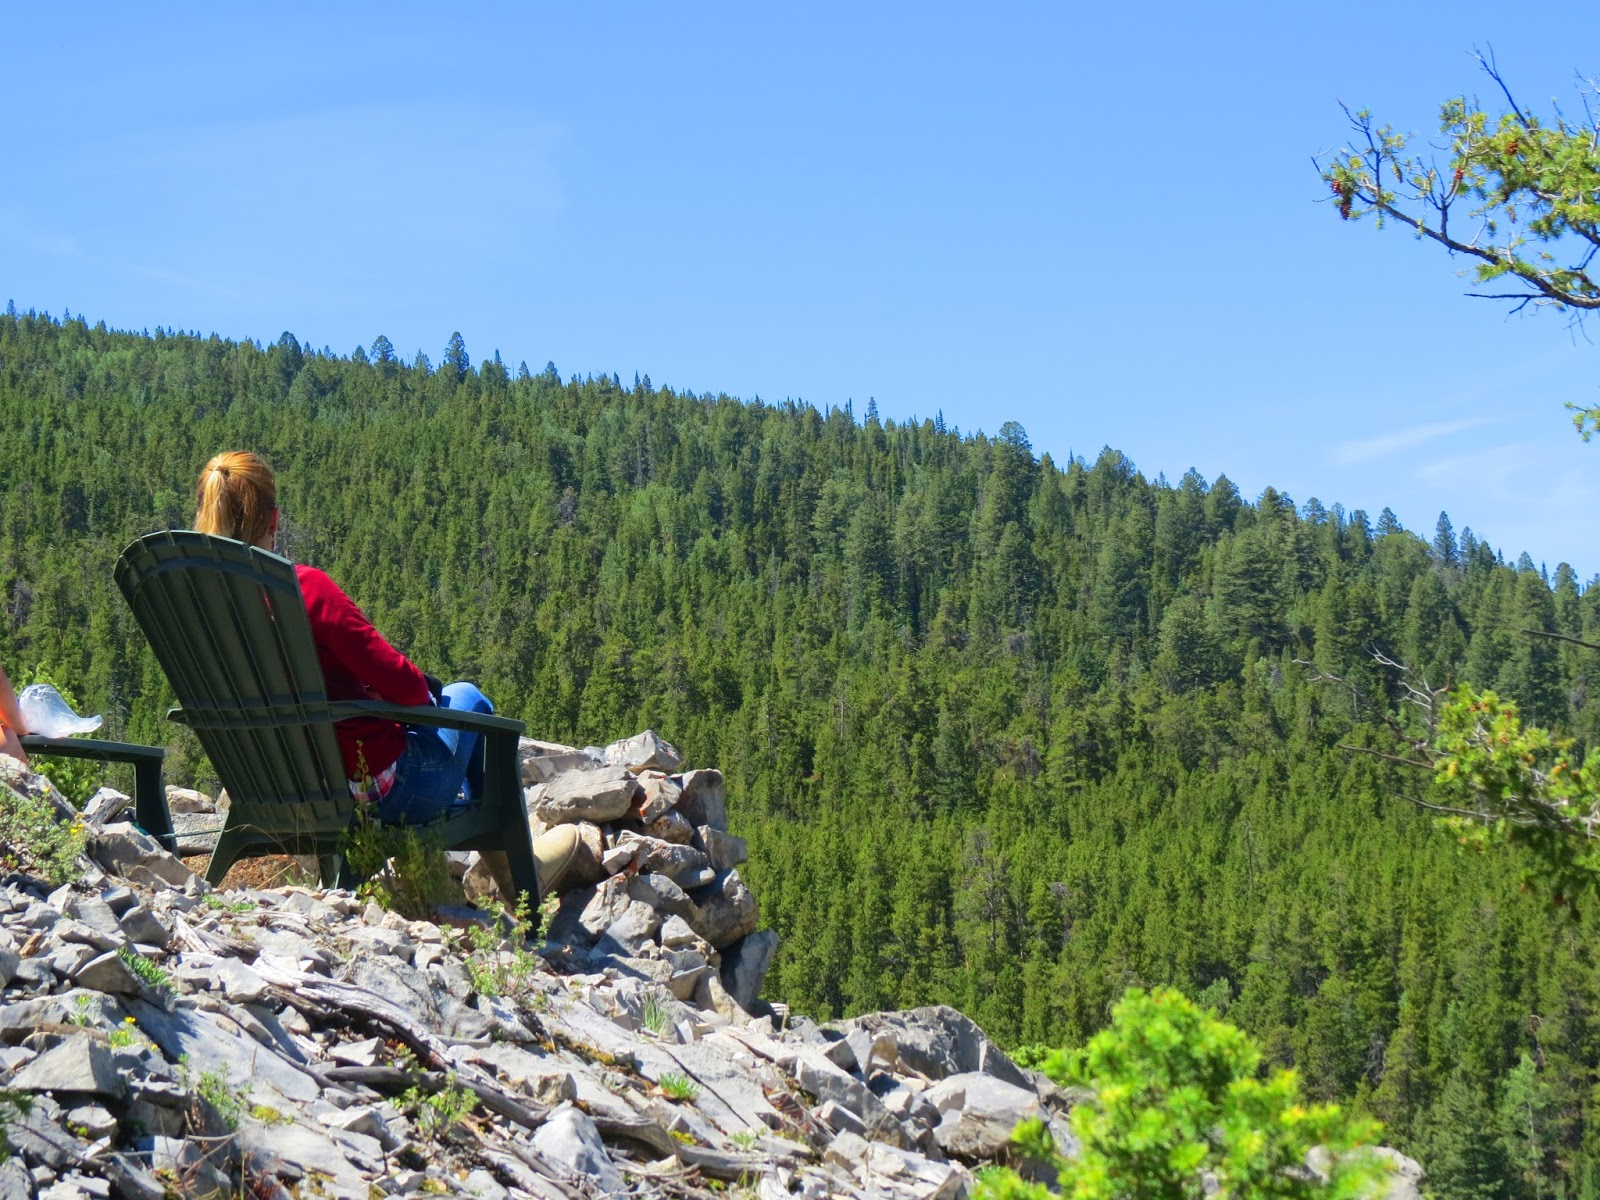 Colorado is the perfect vacation spot to sit back and enjoy nature